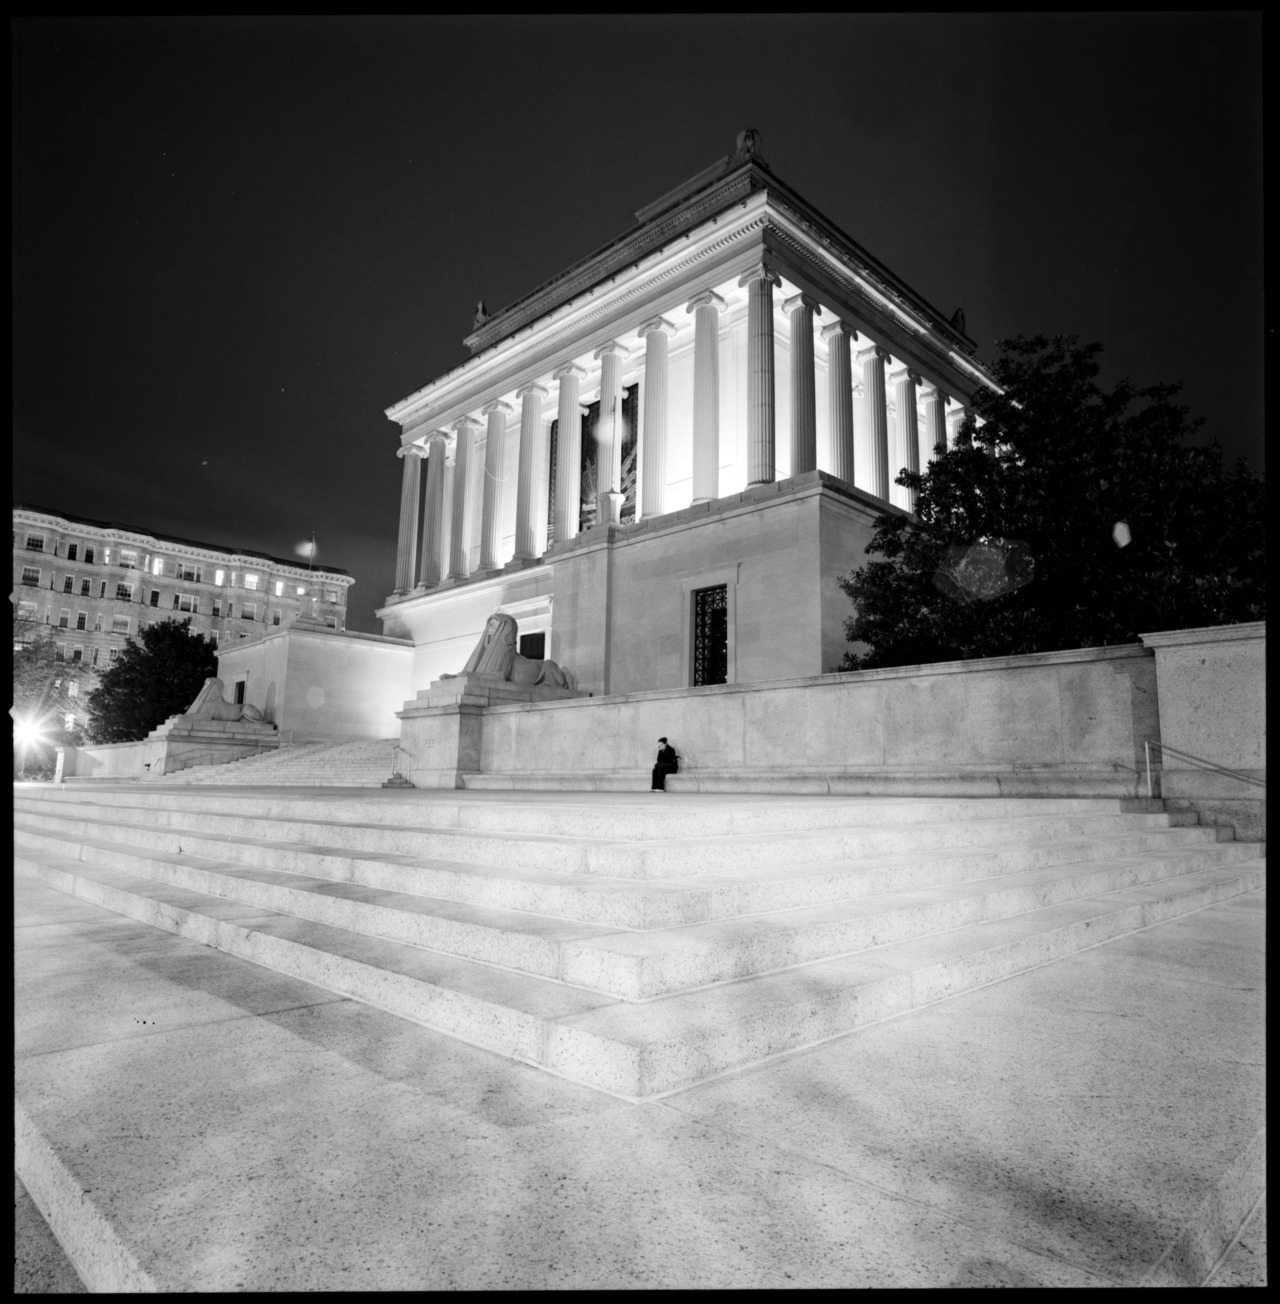 Supreme Council, 33°, Southern Jursidiction       Hasselblad SWCZeiss Biogon 38mm f/4.5Fuji Acros 100Kodak D-76, 7 minutes @ 20°CCanoScan 8800F 4 minute exposure @ f/11